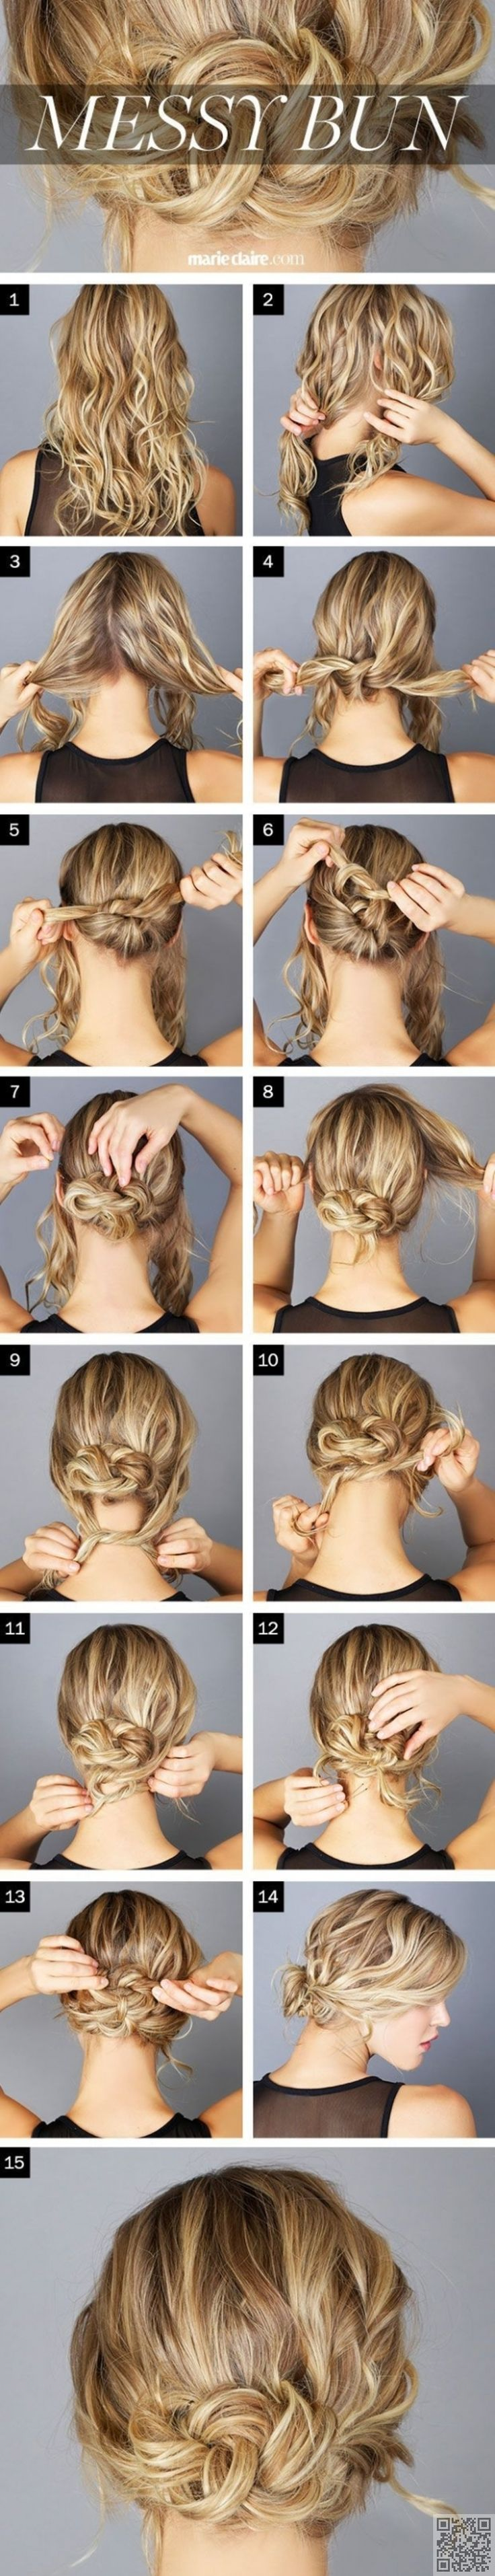 6. The #Messy Bun - 17 Gorgeous #Hairstyles for Lazy Girls ... → Hair #Twisted